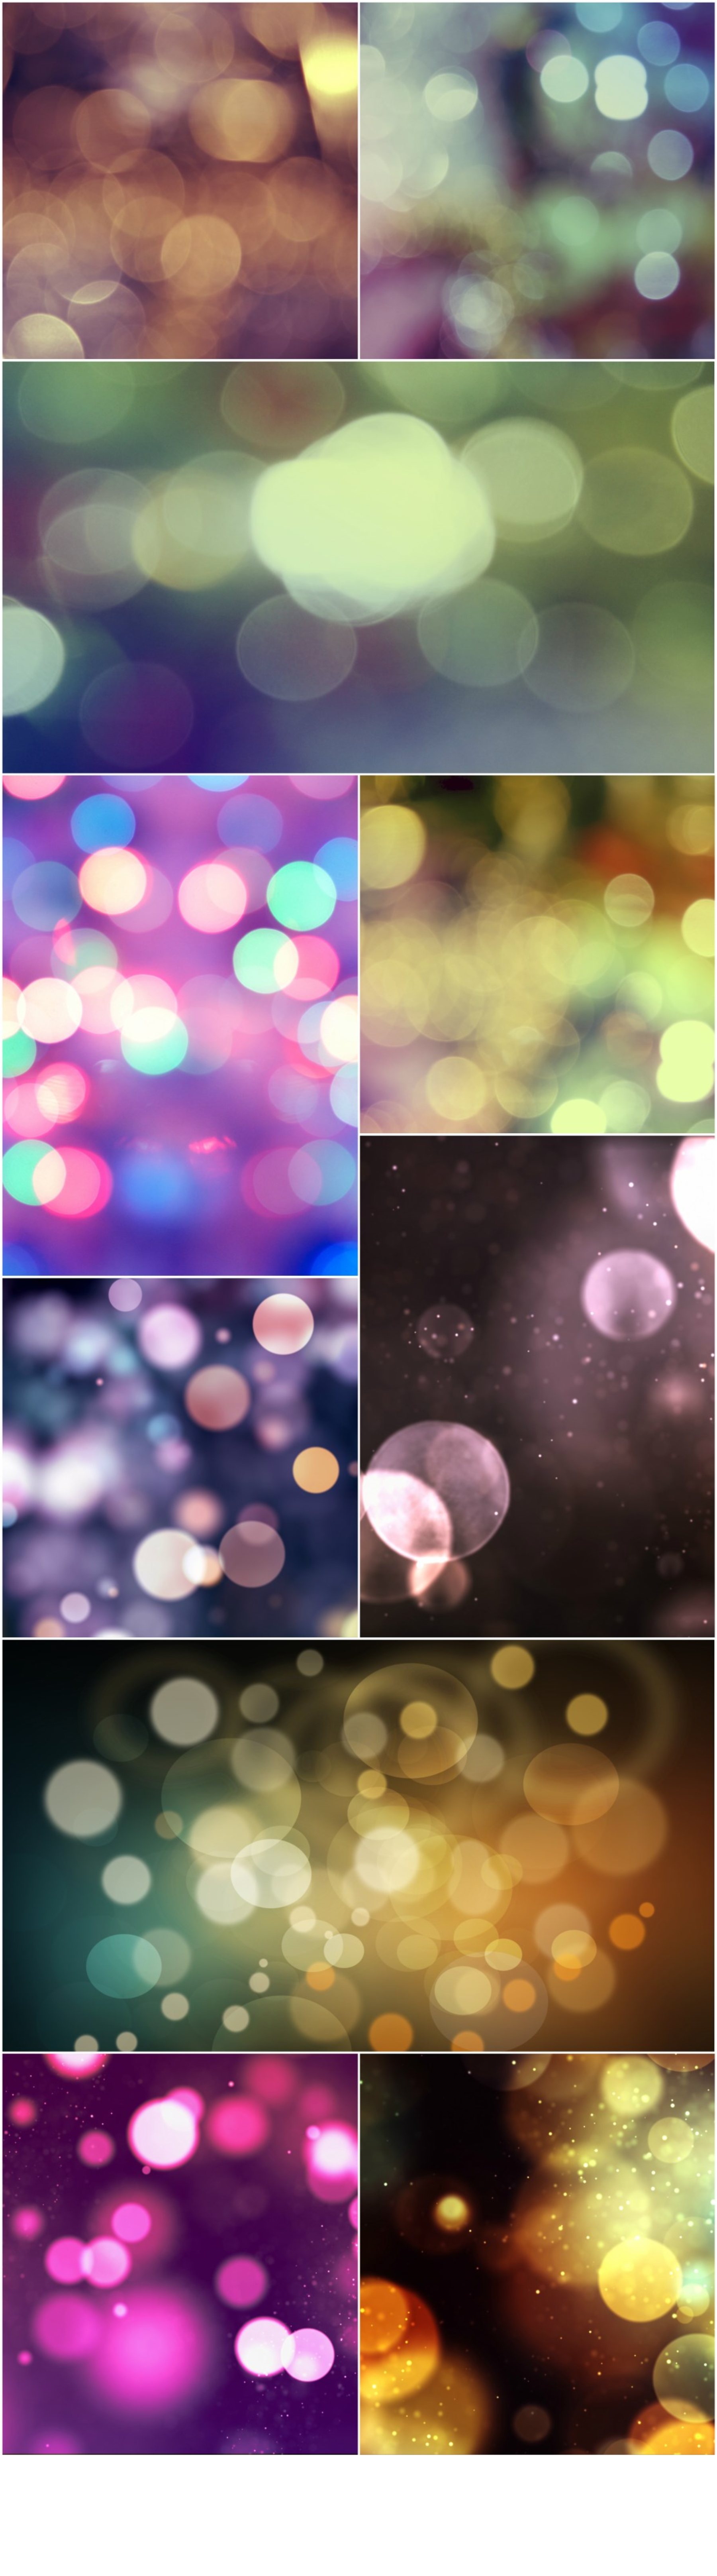 2000 High Resolution Backgrounds example image 27